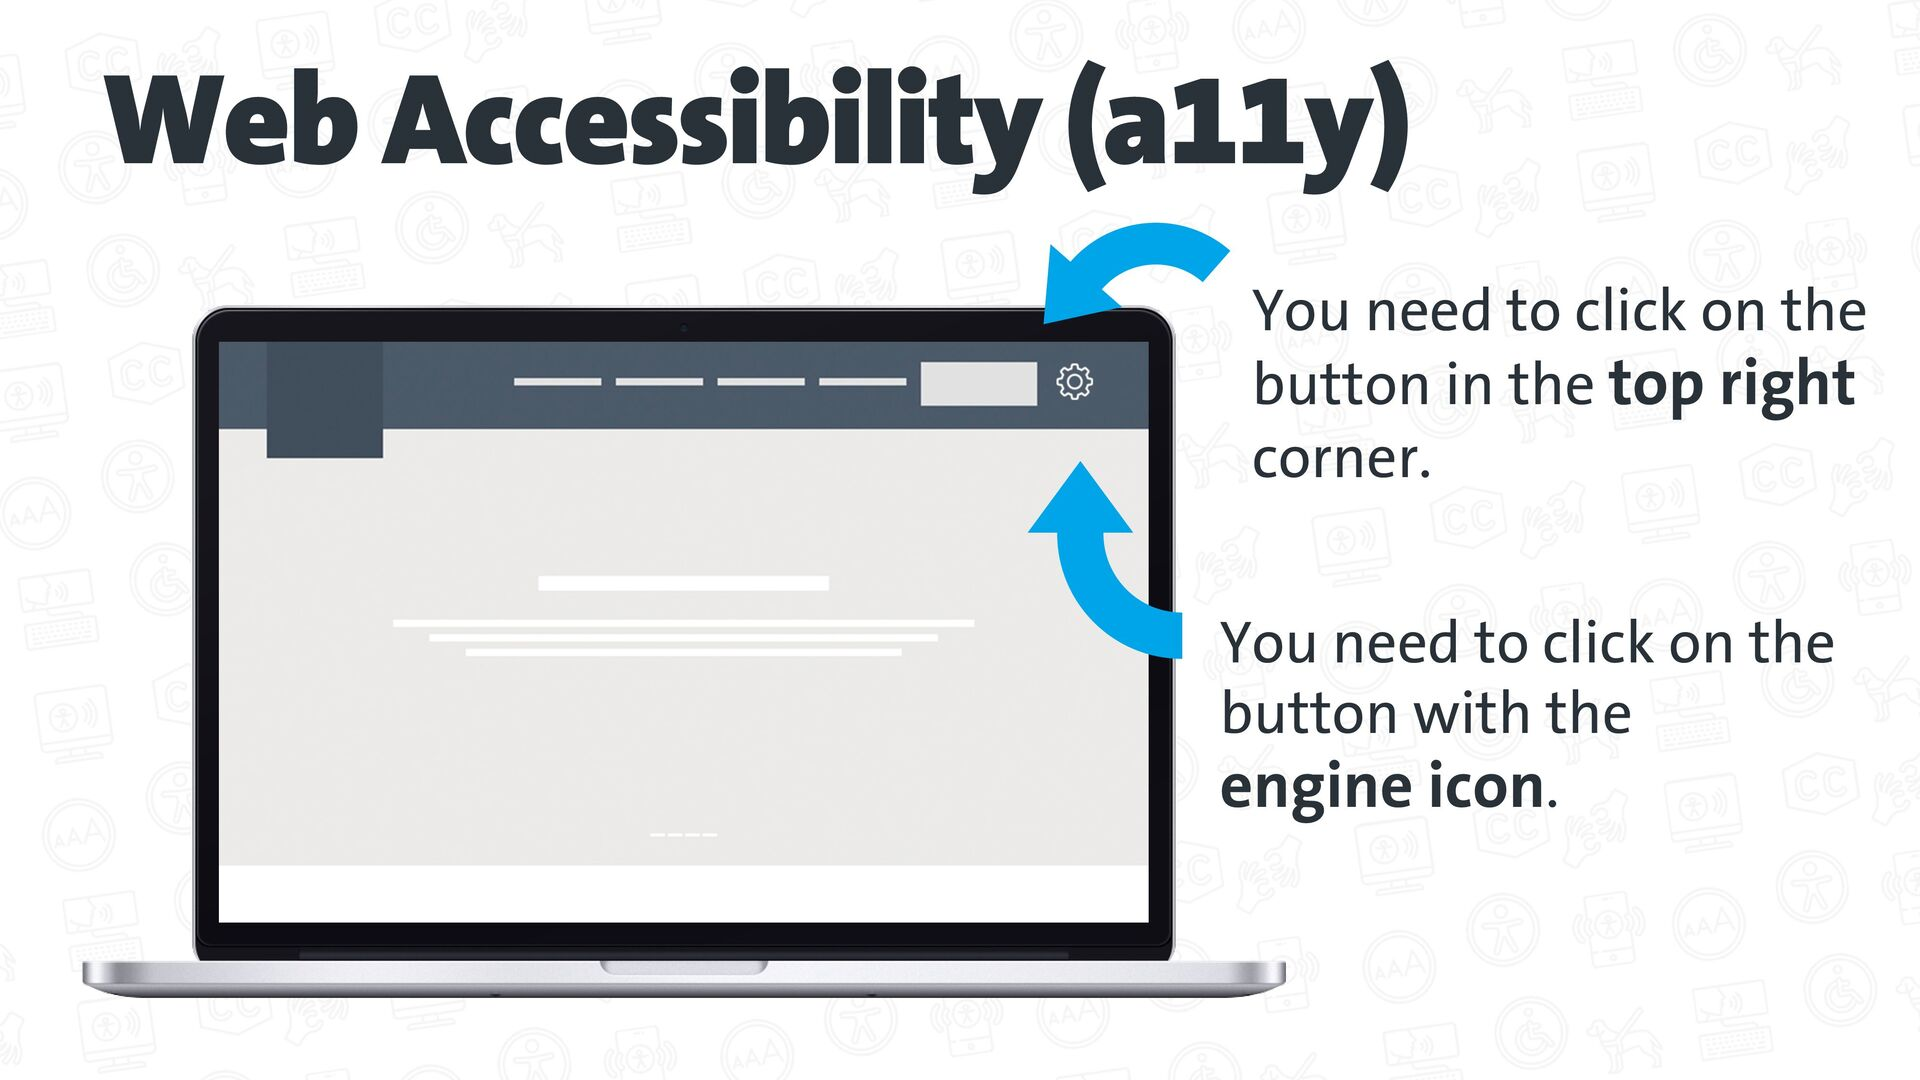 Web Accessibility (a11y) The Web is fundamental...